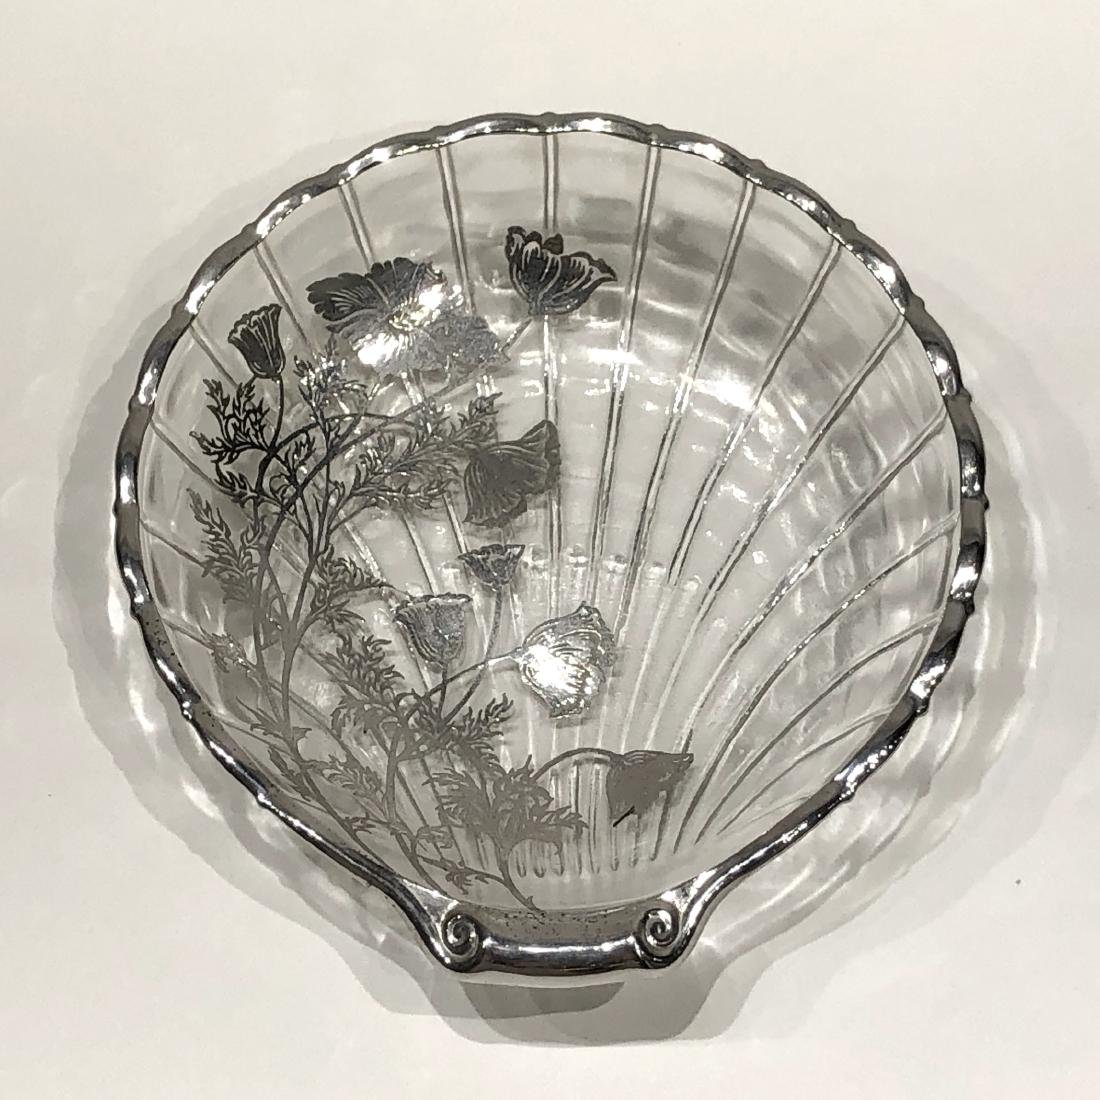 Japanese Silver Overlay Glass Plate & Pair Swan Bowls - 4